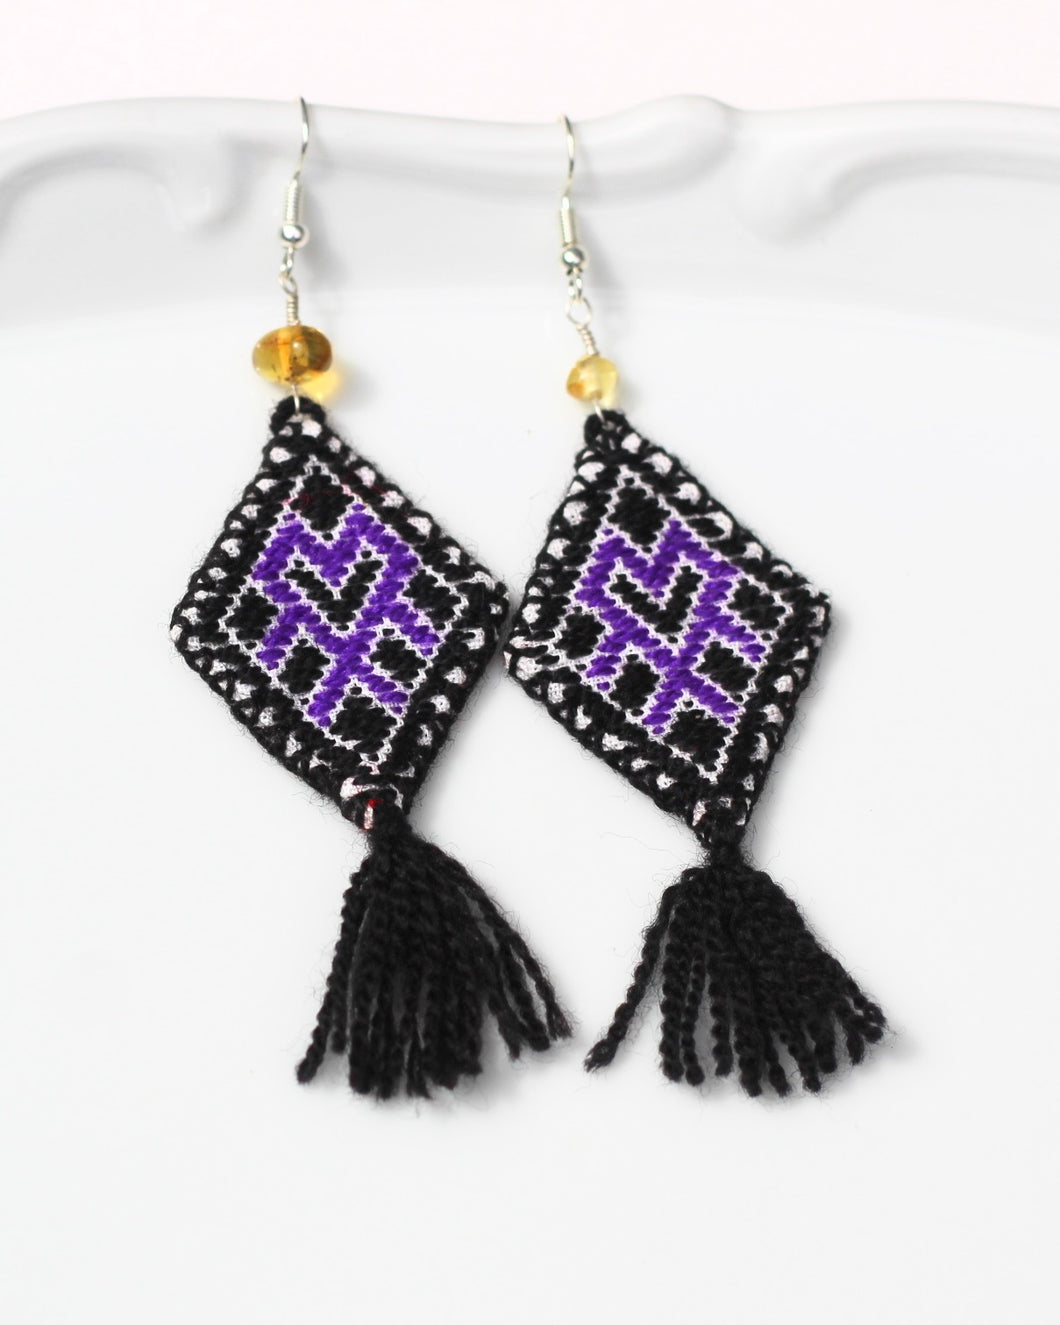 Hand Embroidered Tassel Earrings- Black